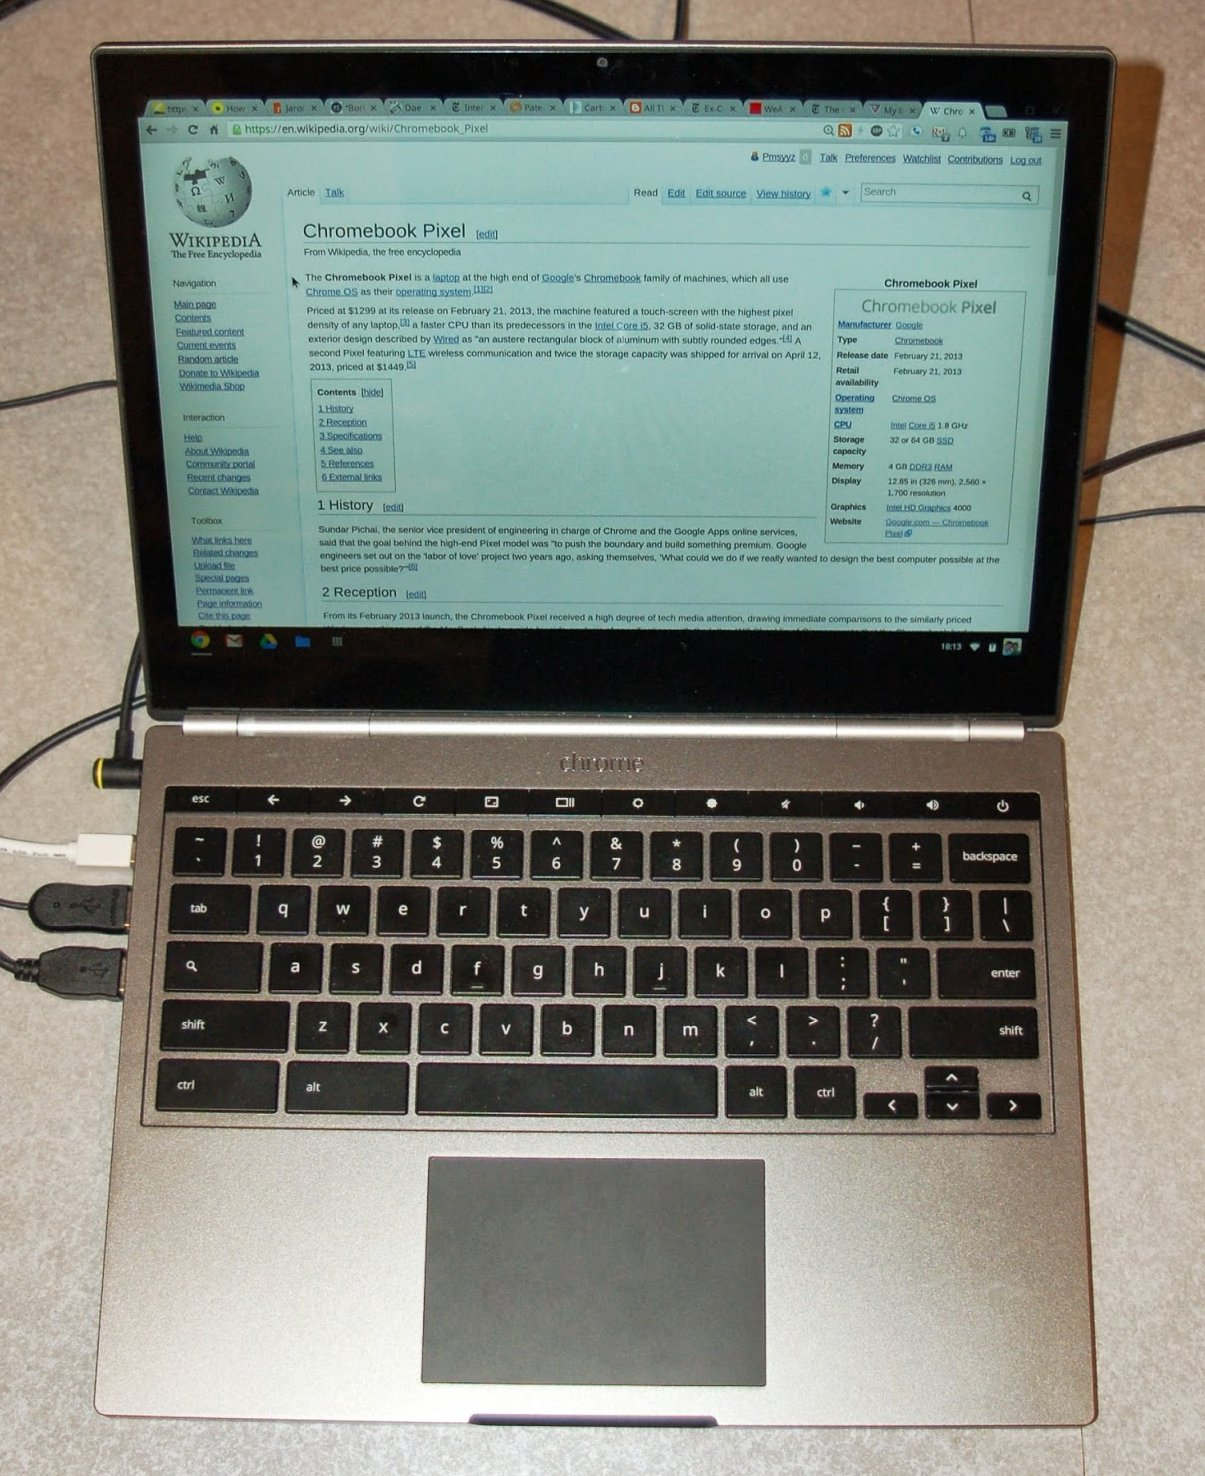 Chromebook Pixel - Wikipedia